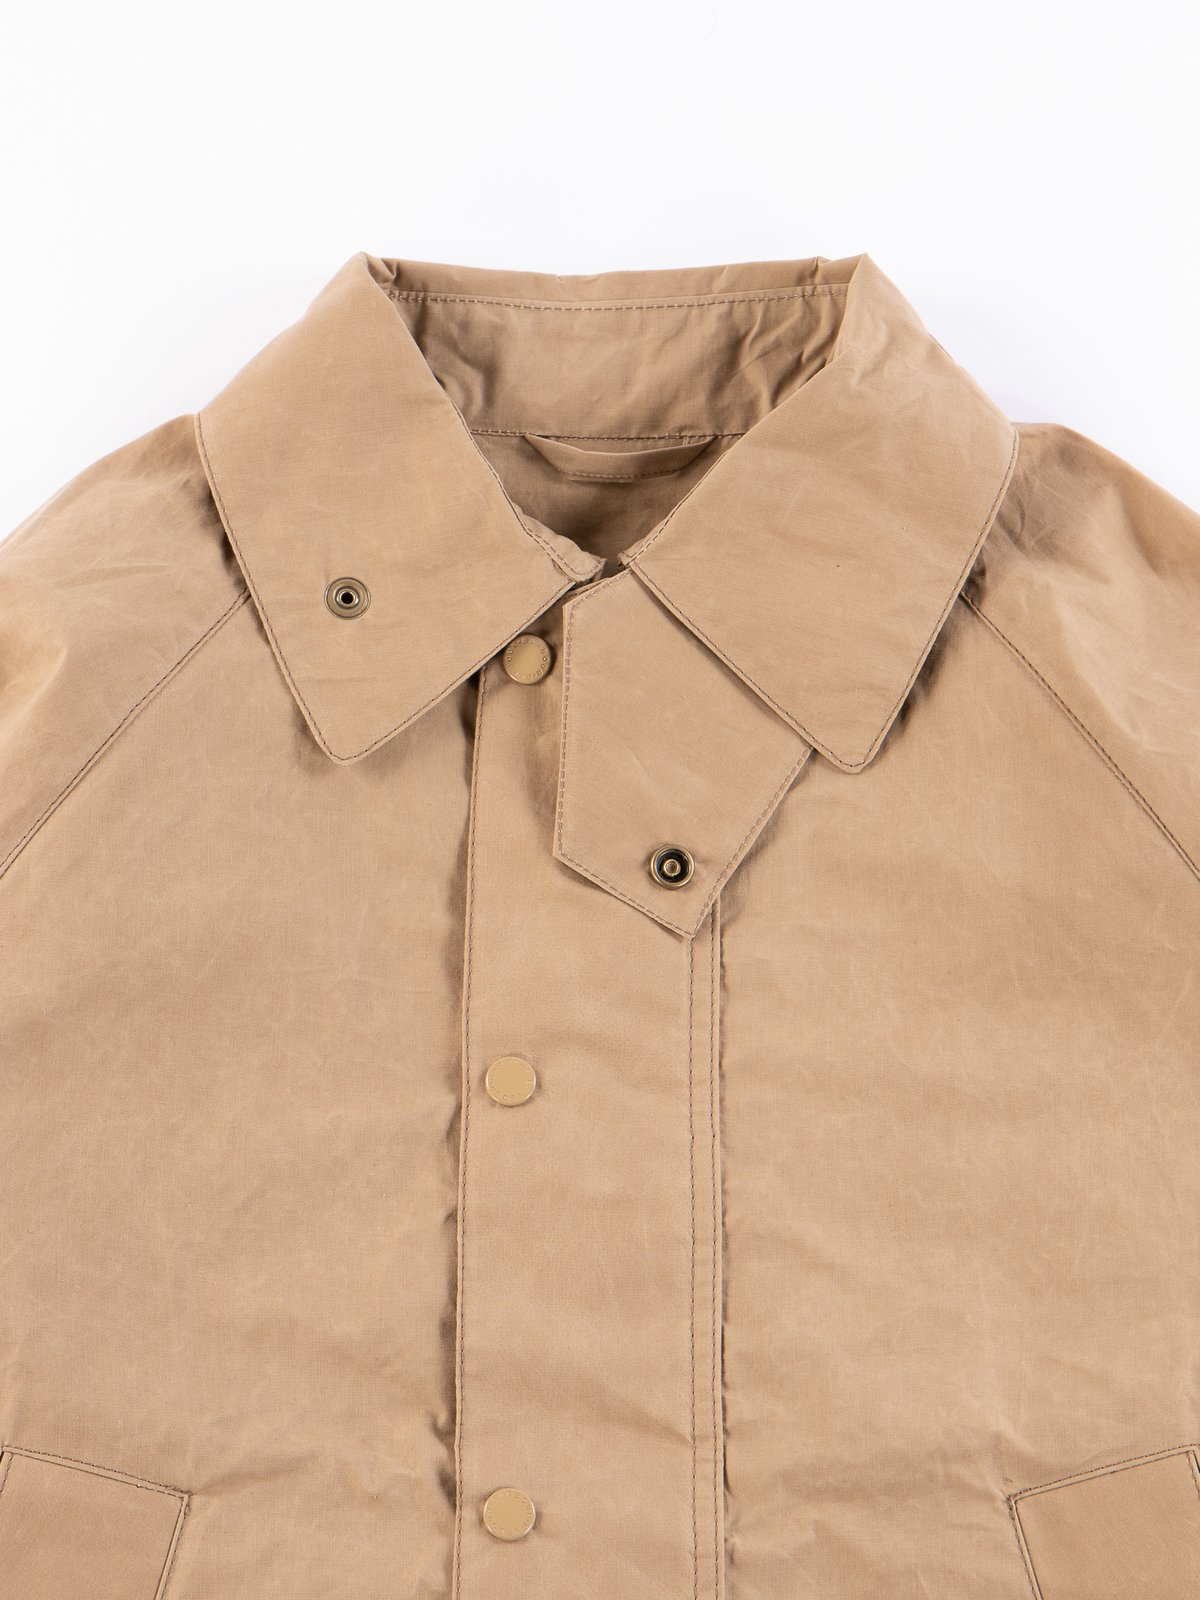 Sand Unlined Graham Jacket - Image 3